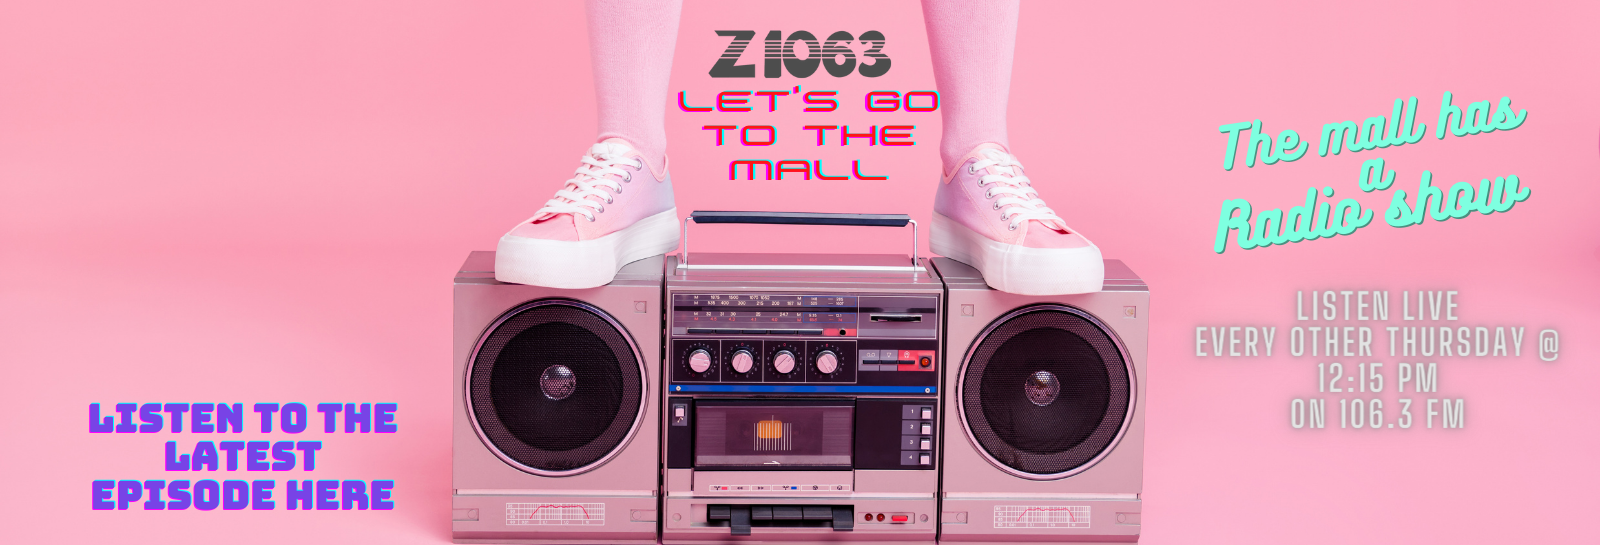 Copy of Lets go to the mall 2